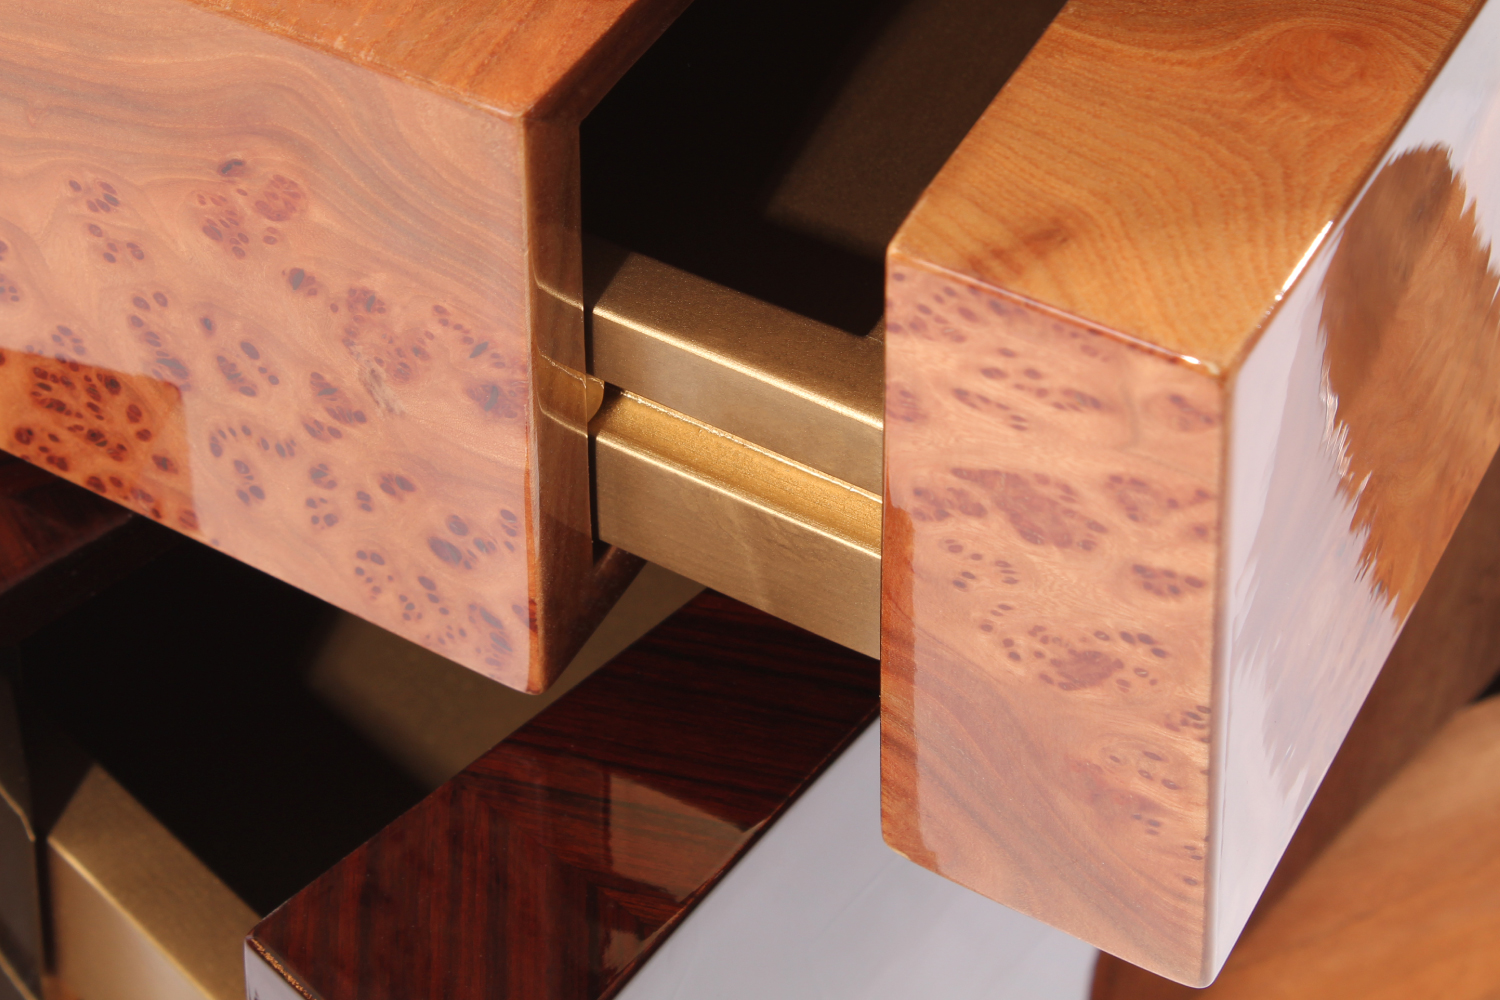 Hollow Swivel Chest of Drawers is structure in wood veneered with bird's eye, elm burl, ironwood and american walnut